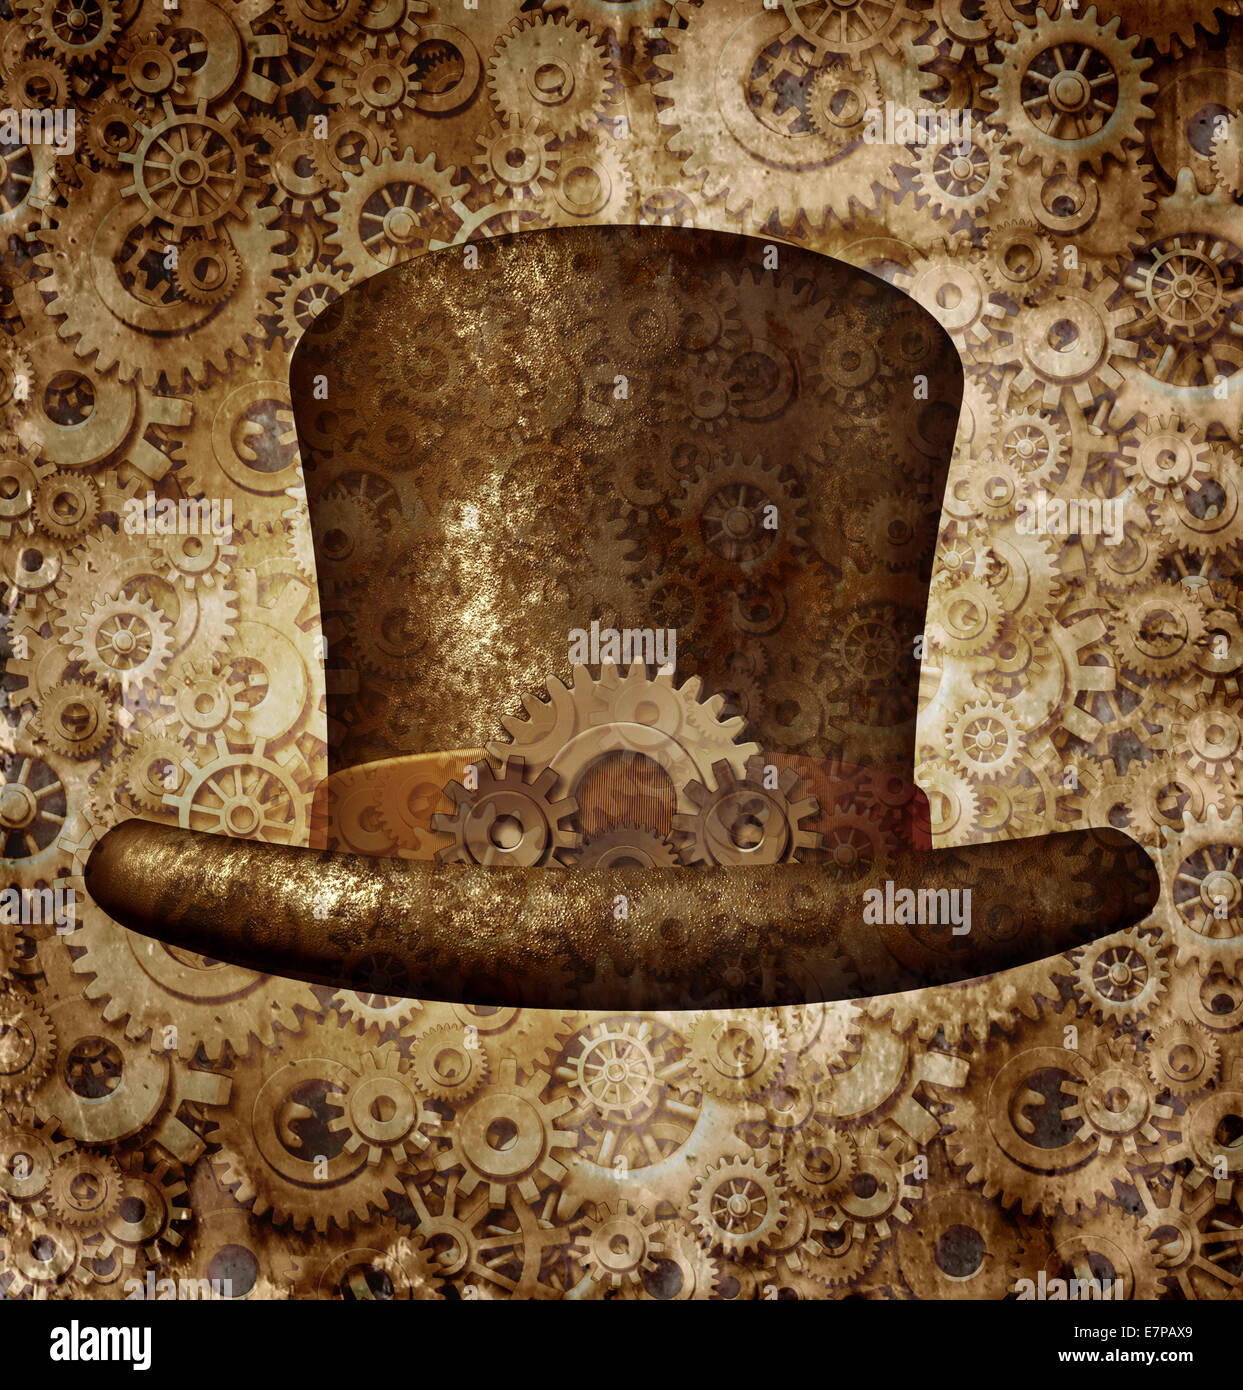 Steampunk top hat as a science fiction concept made of metal copper gears and cogs wearing a historical victorian - Stock Image